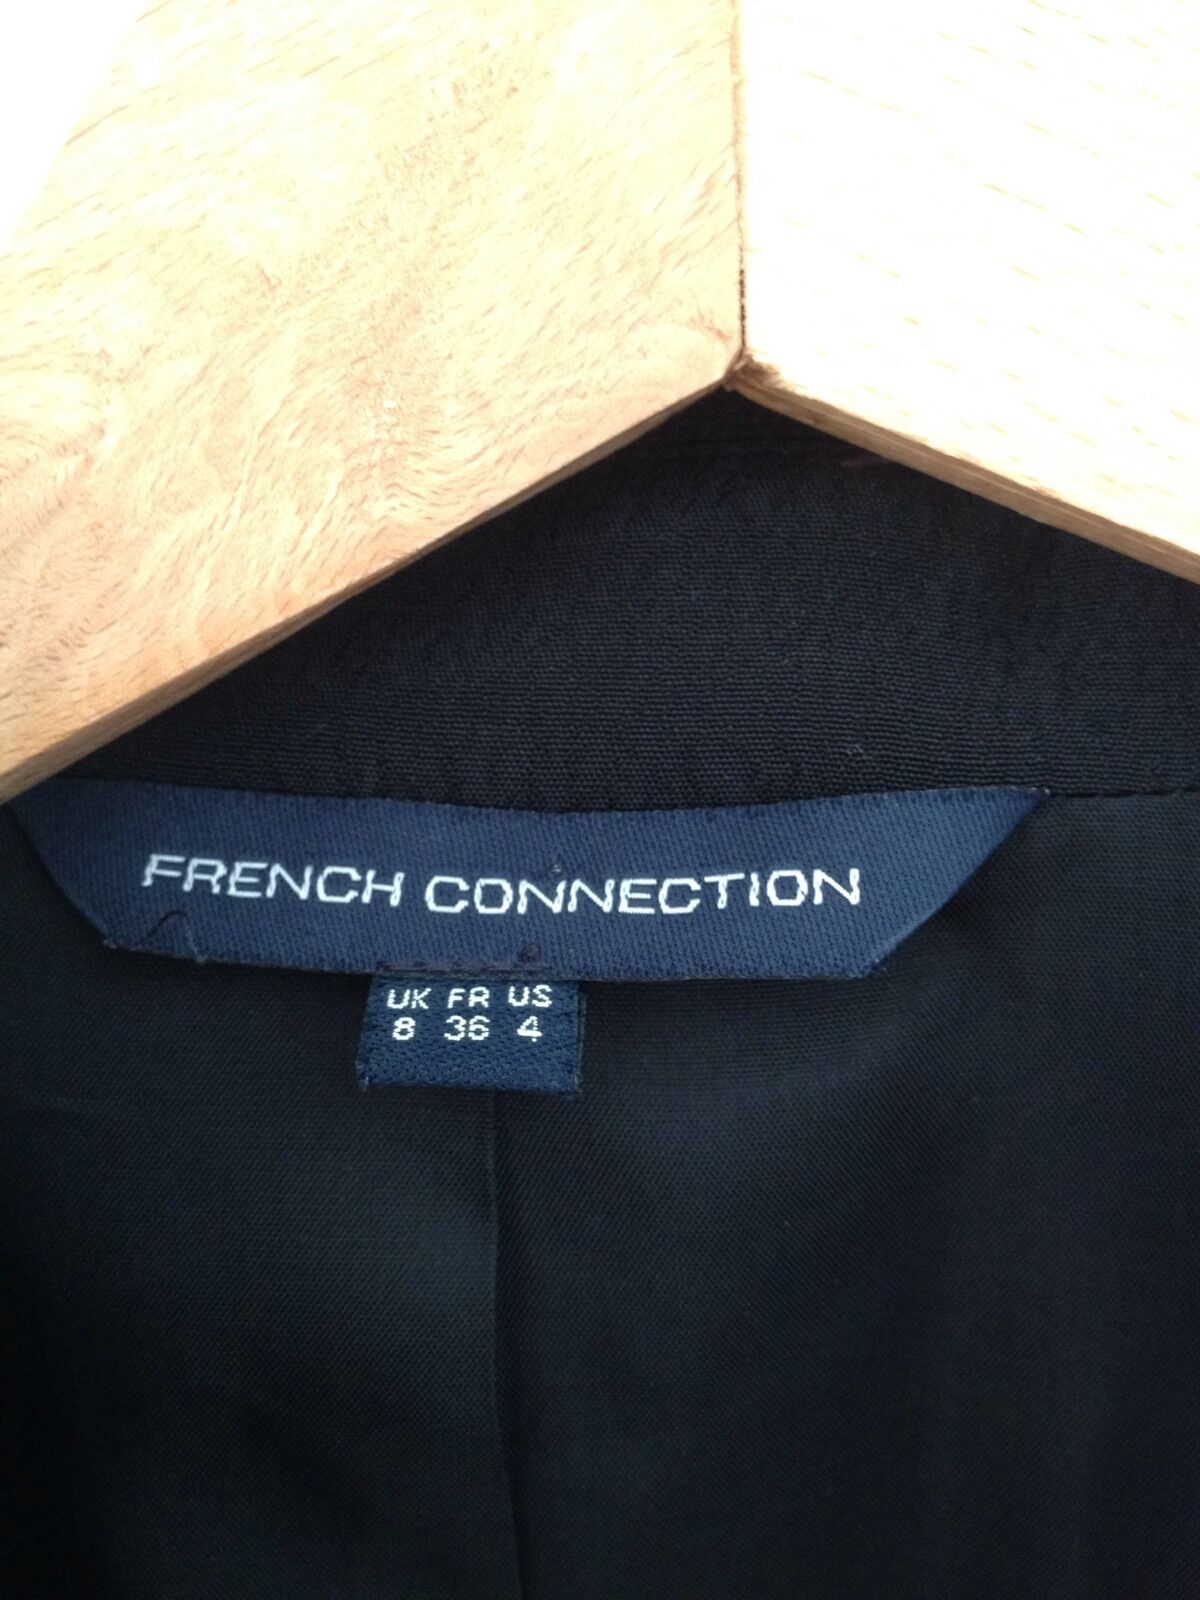 Gorgeous French Connection Light Blazer, size UK8 - - - VGC bb0f82